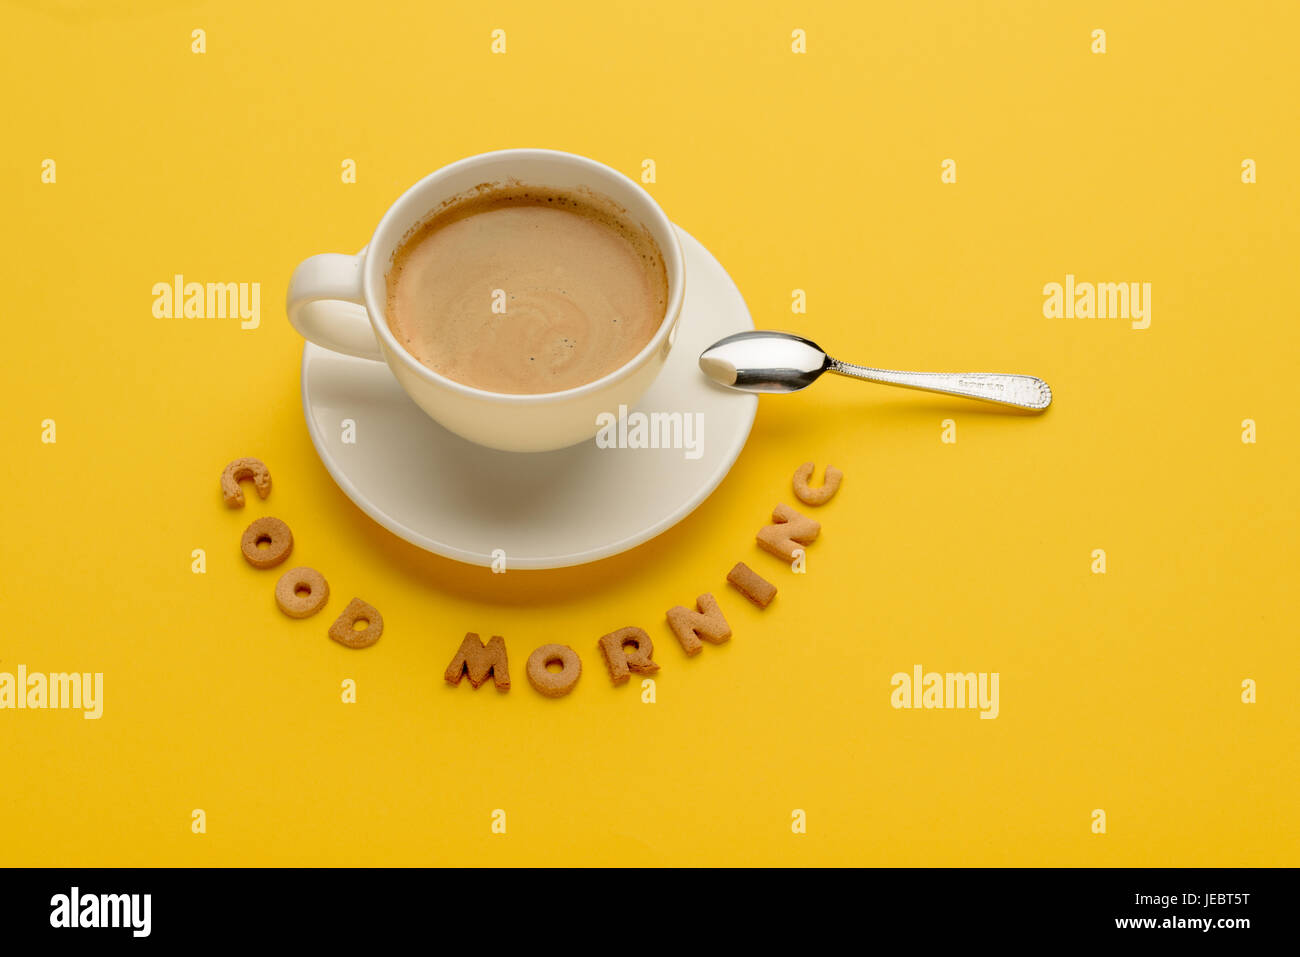 Close-up view of cup of fresh hot coffee and good morning inscription - Stock Image